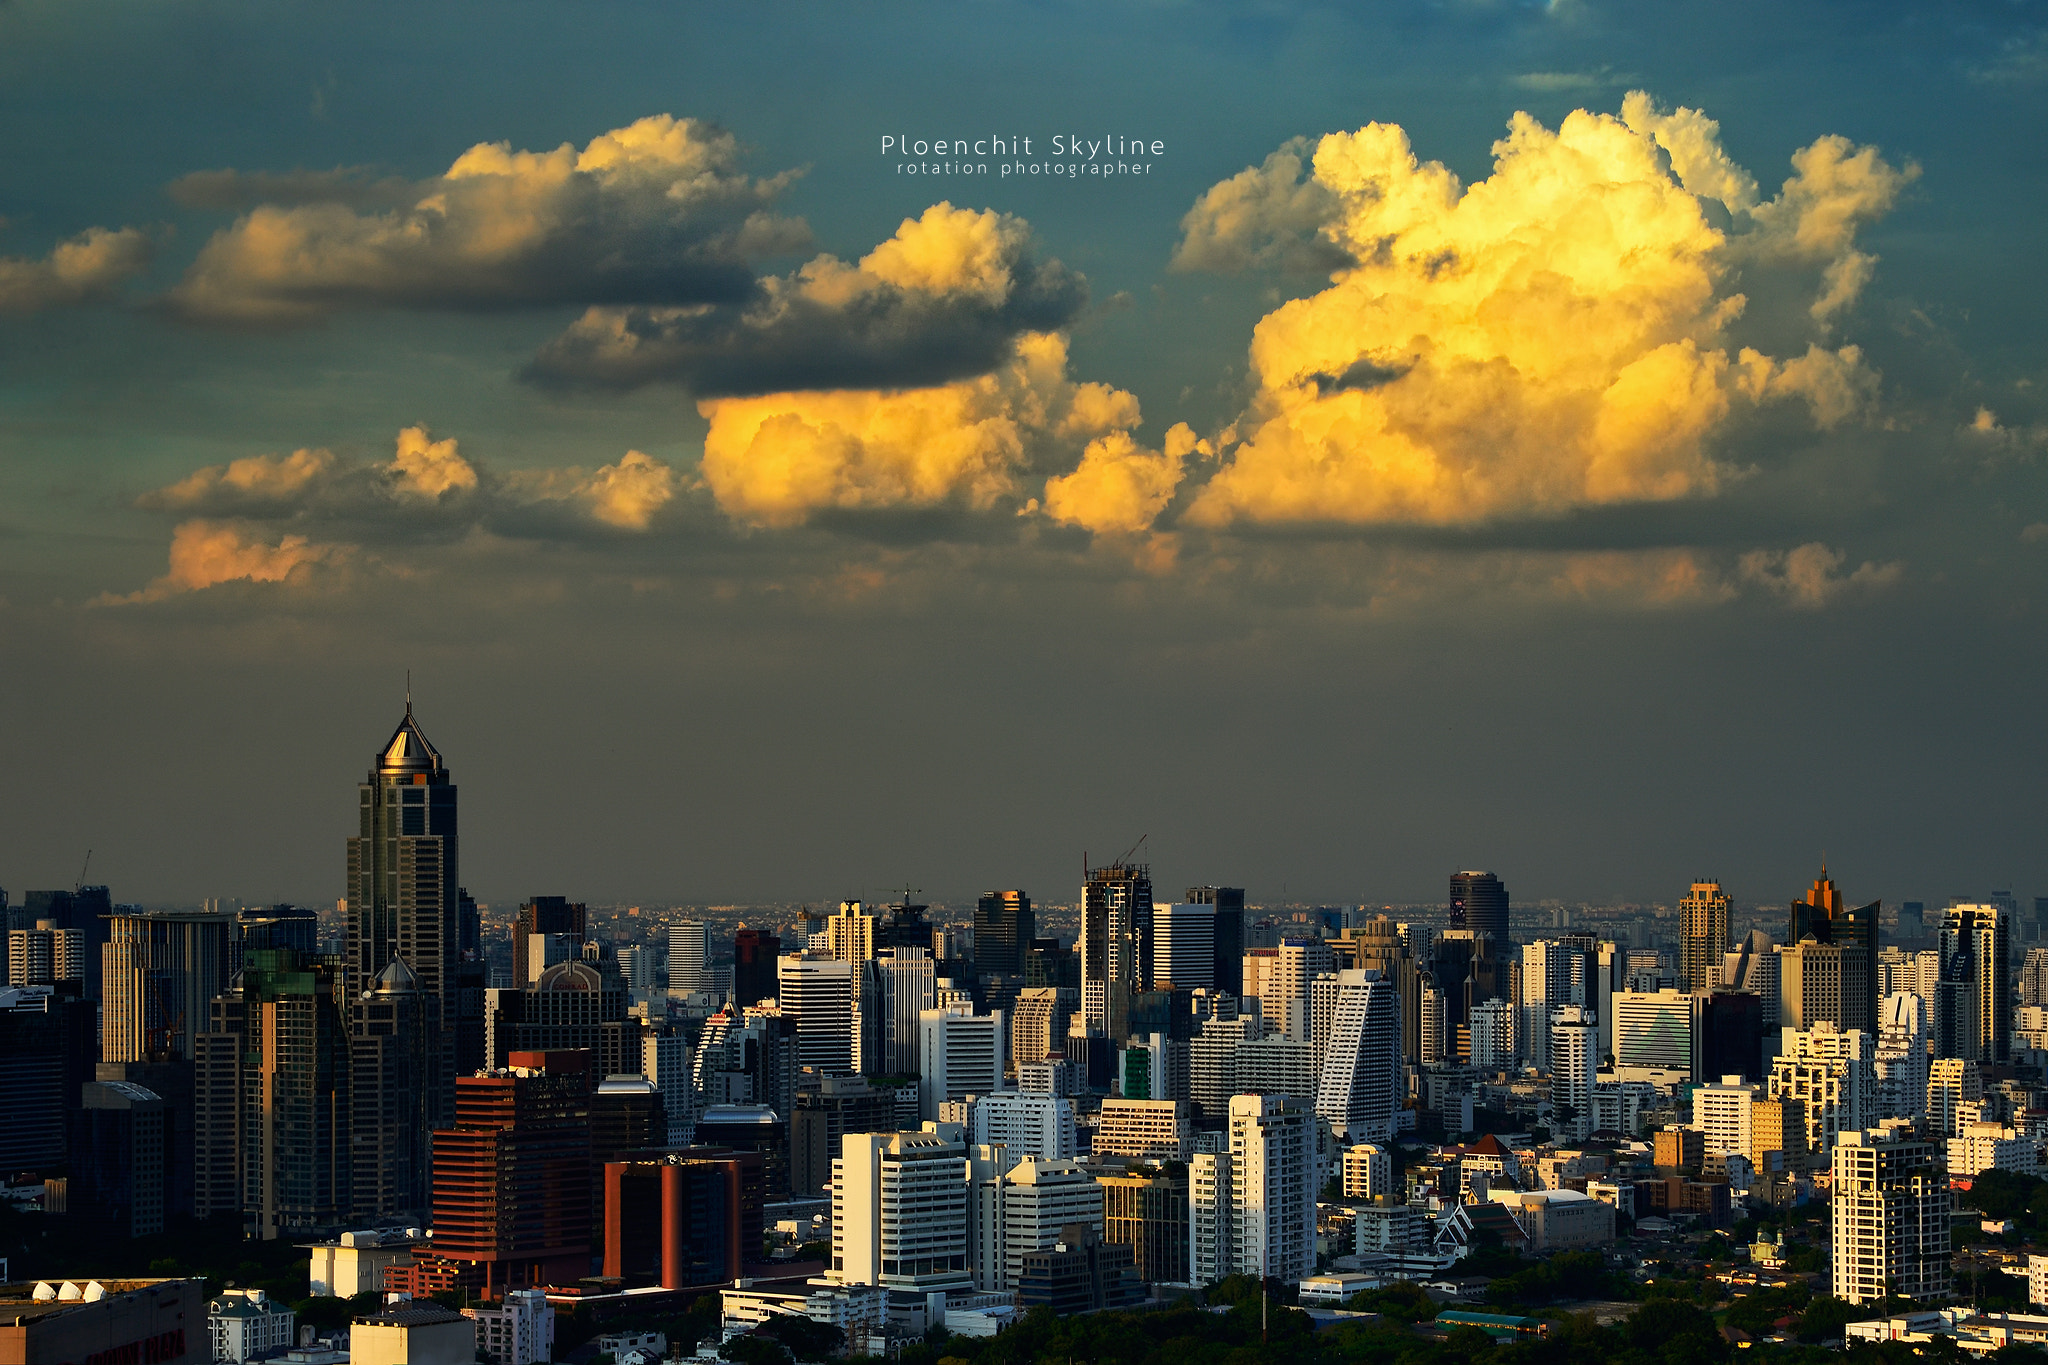 Photograph Ploenchit Skyline by Jirawas Teekayu on 500px